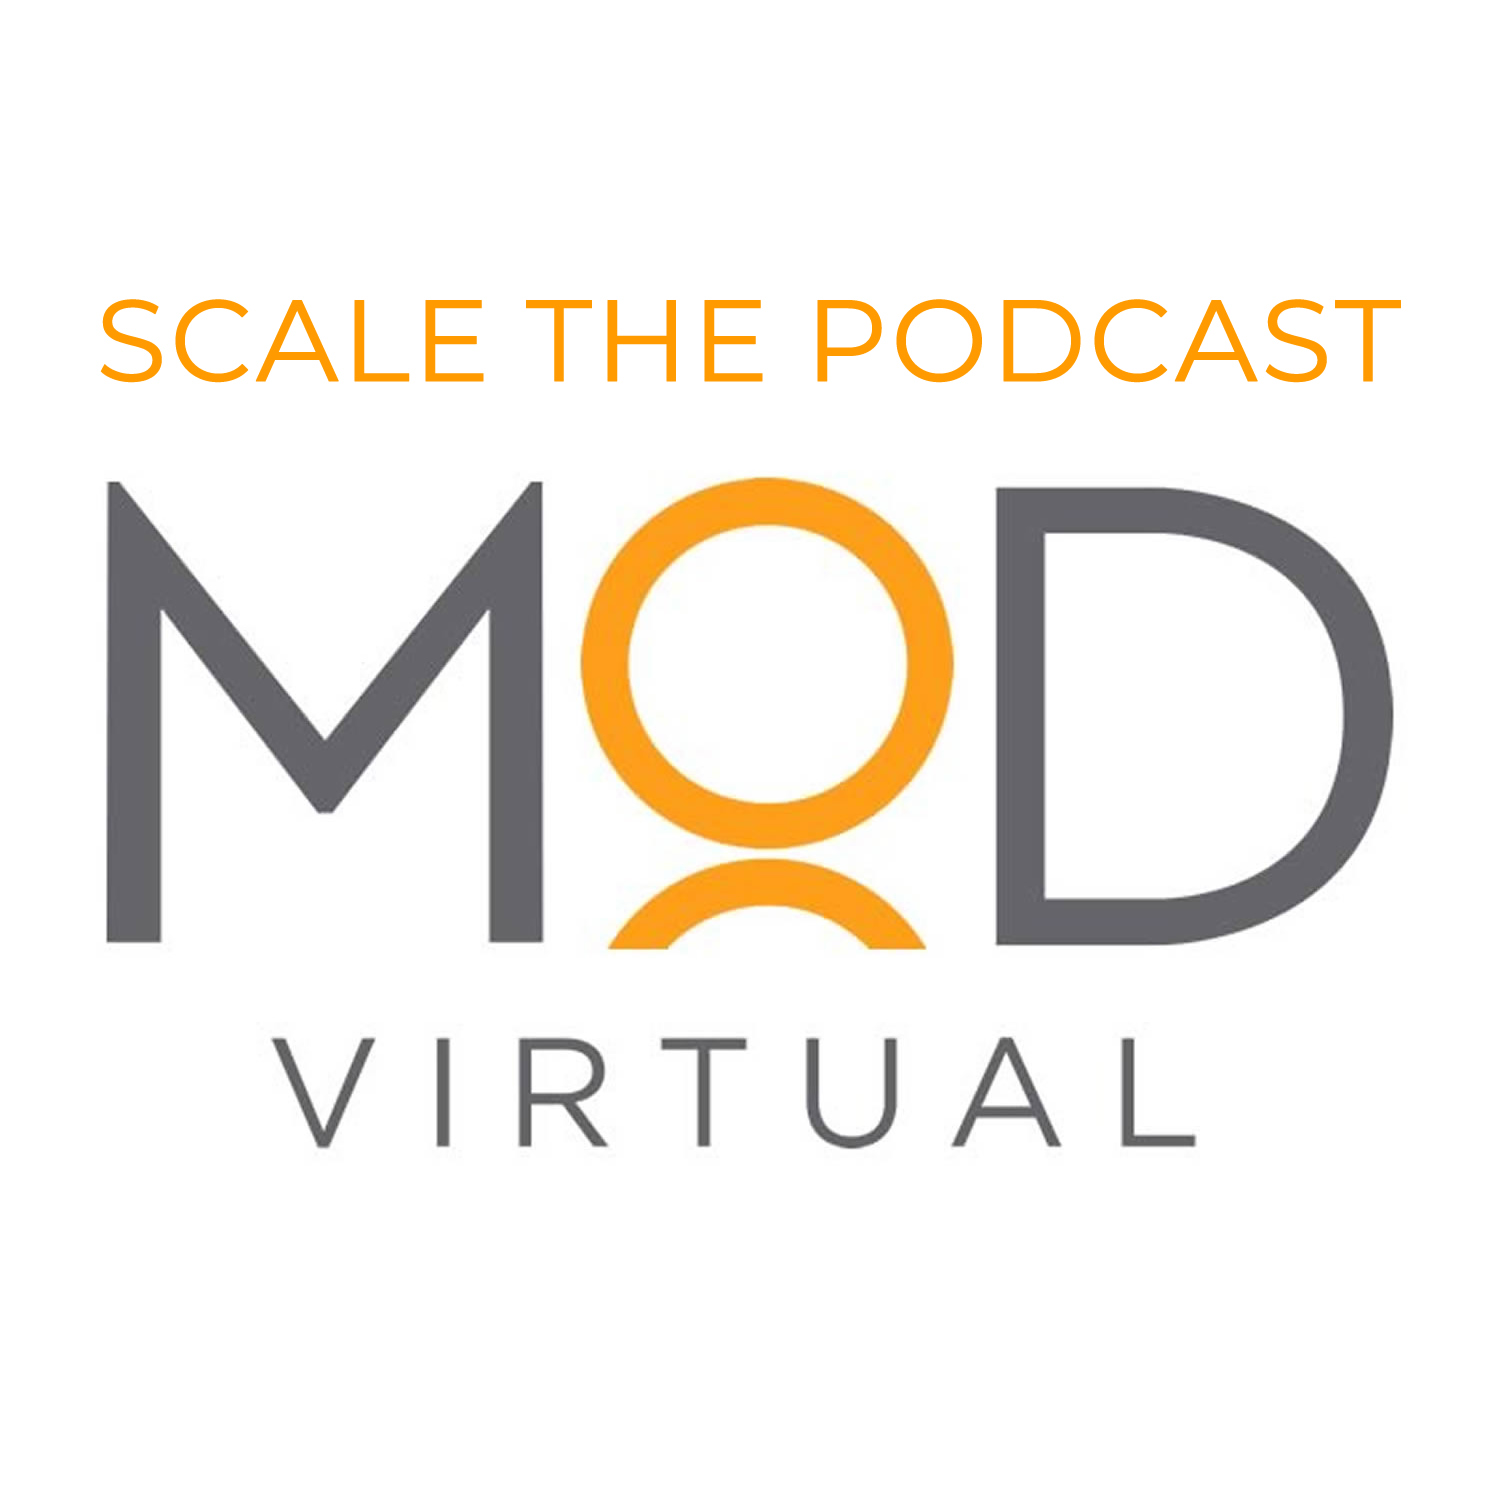 A highlight from Virtual Assistants Pay Off For Modern Lending with Daniel Smith